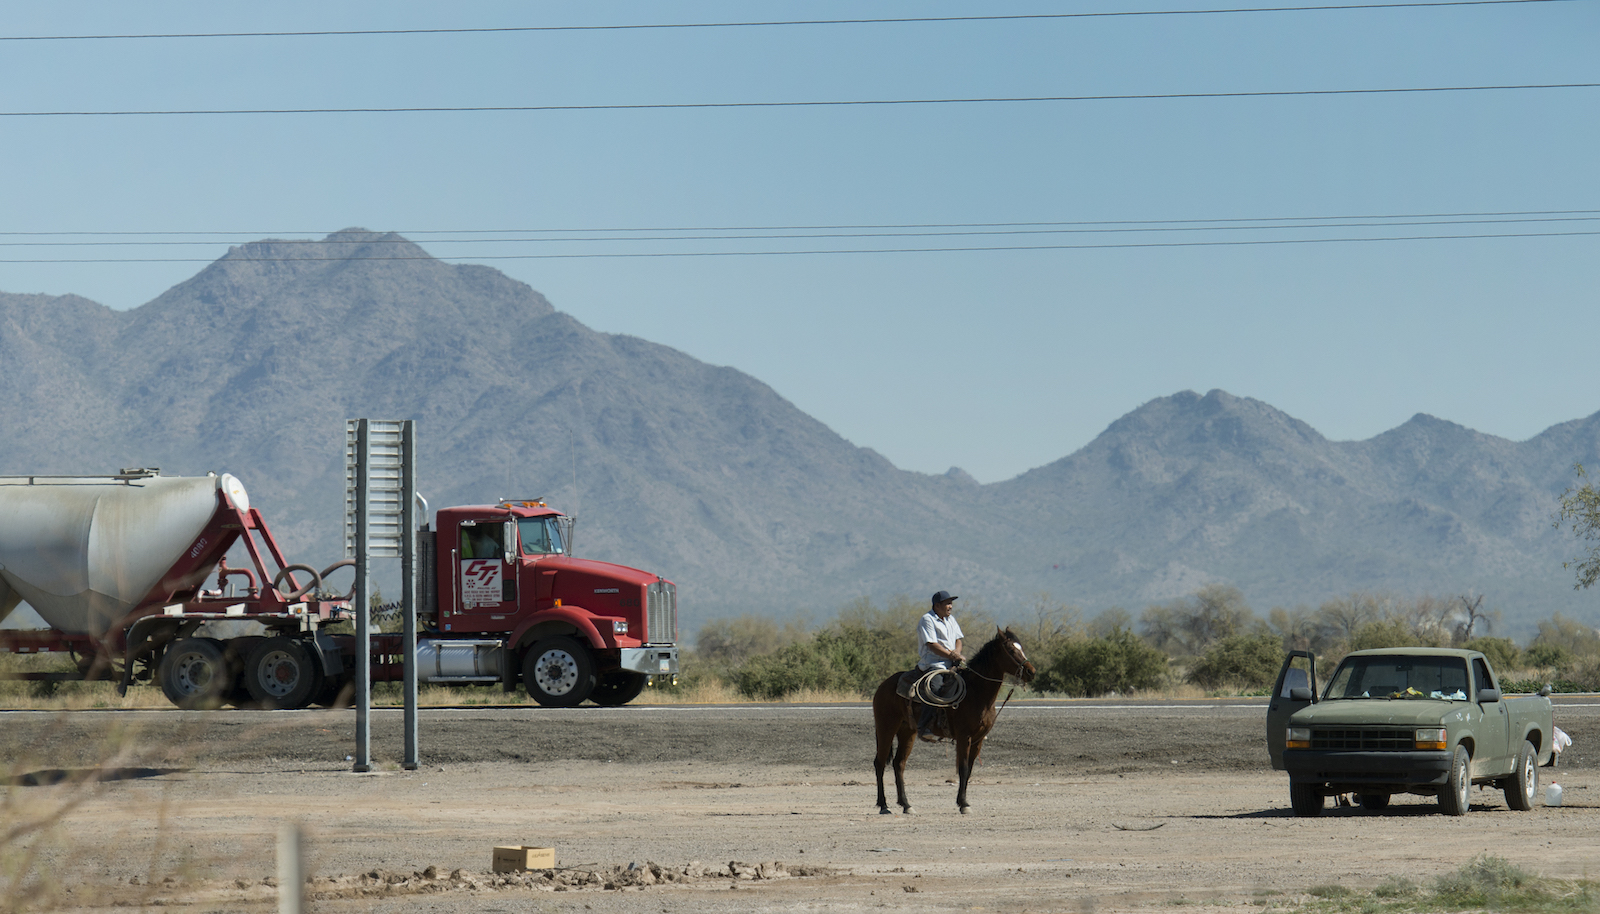 a red truck, a man on a horse, and a pickup truck stand on a dry, mountainous landscape